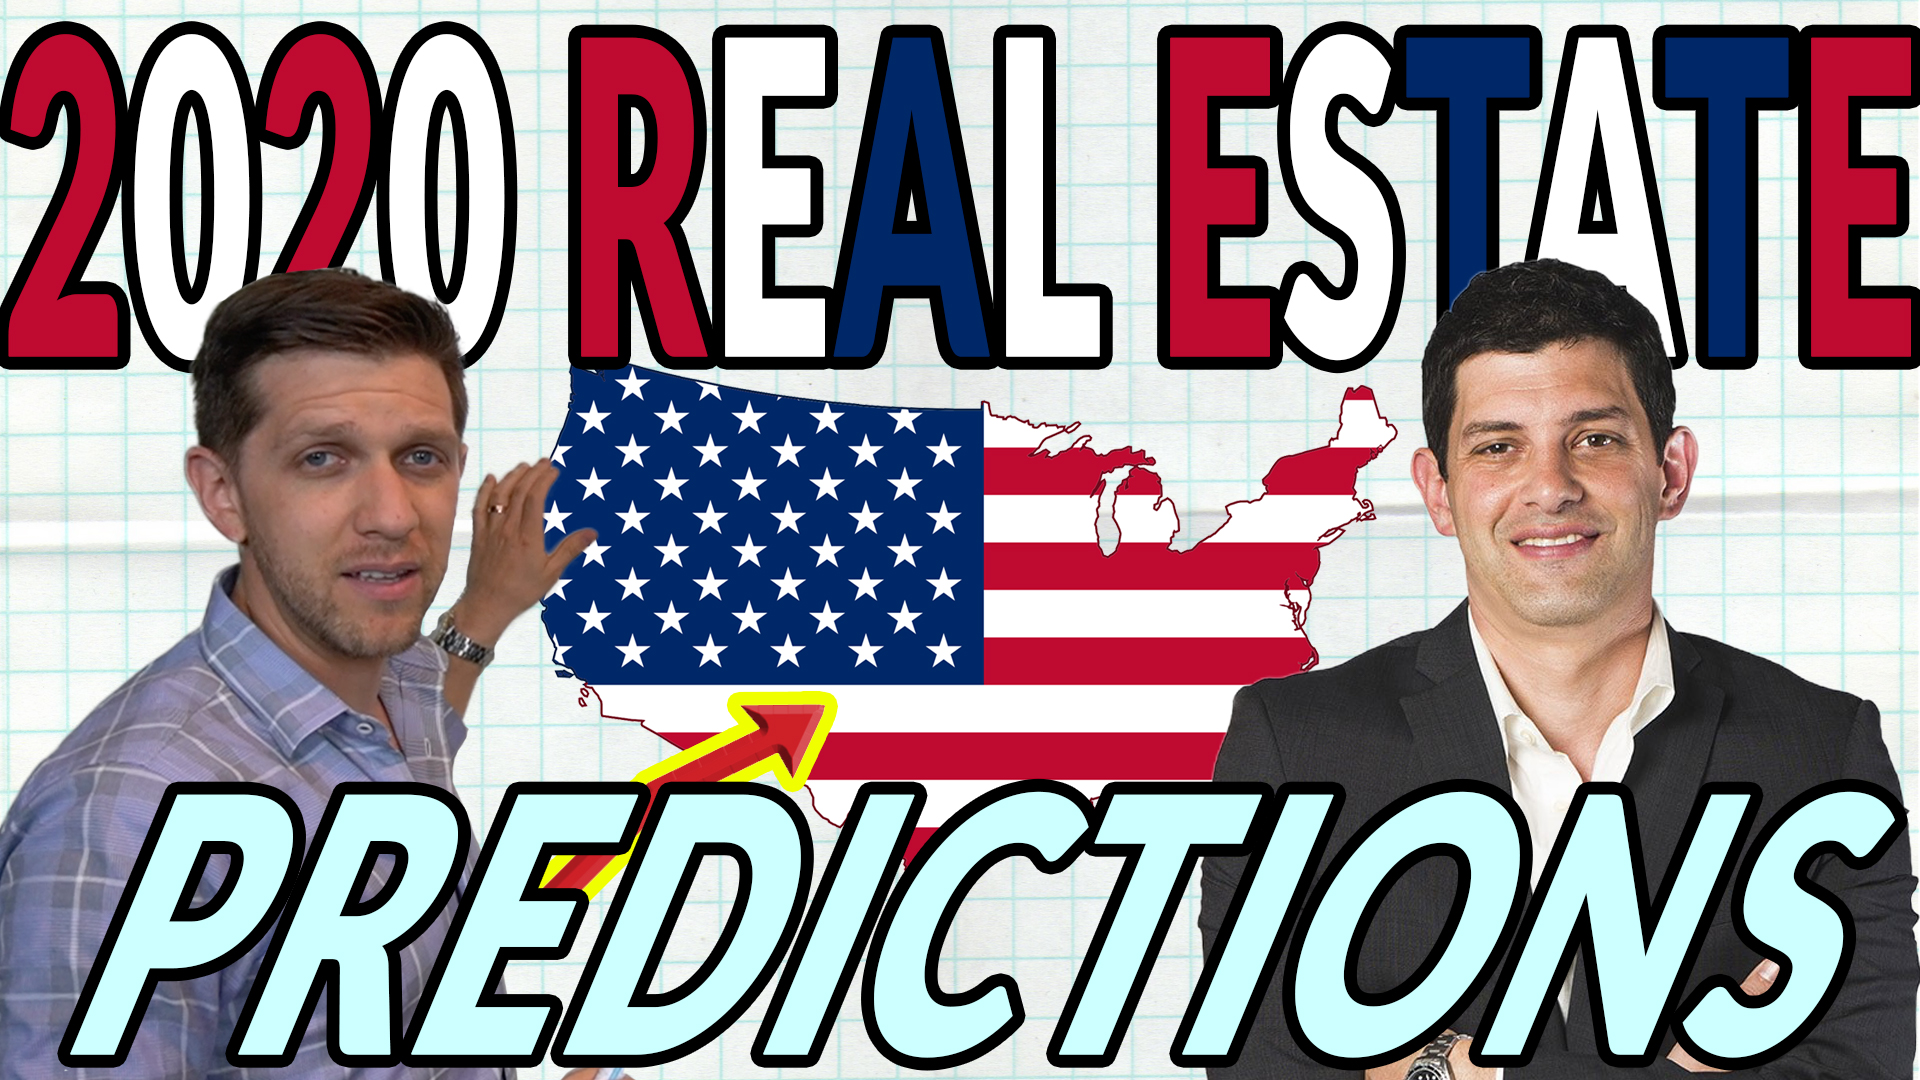 Real Estate Predictions: 2020 Edition